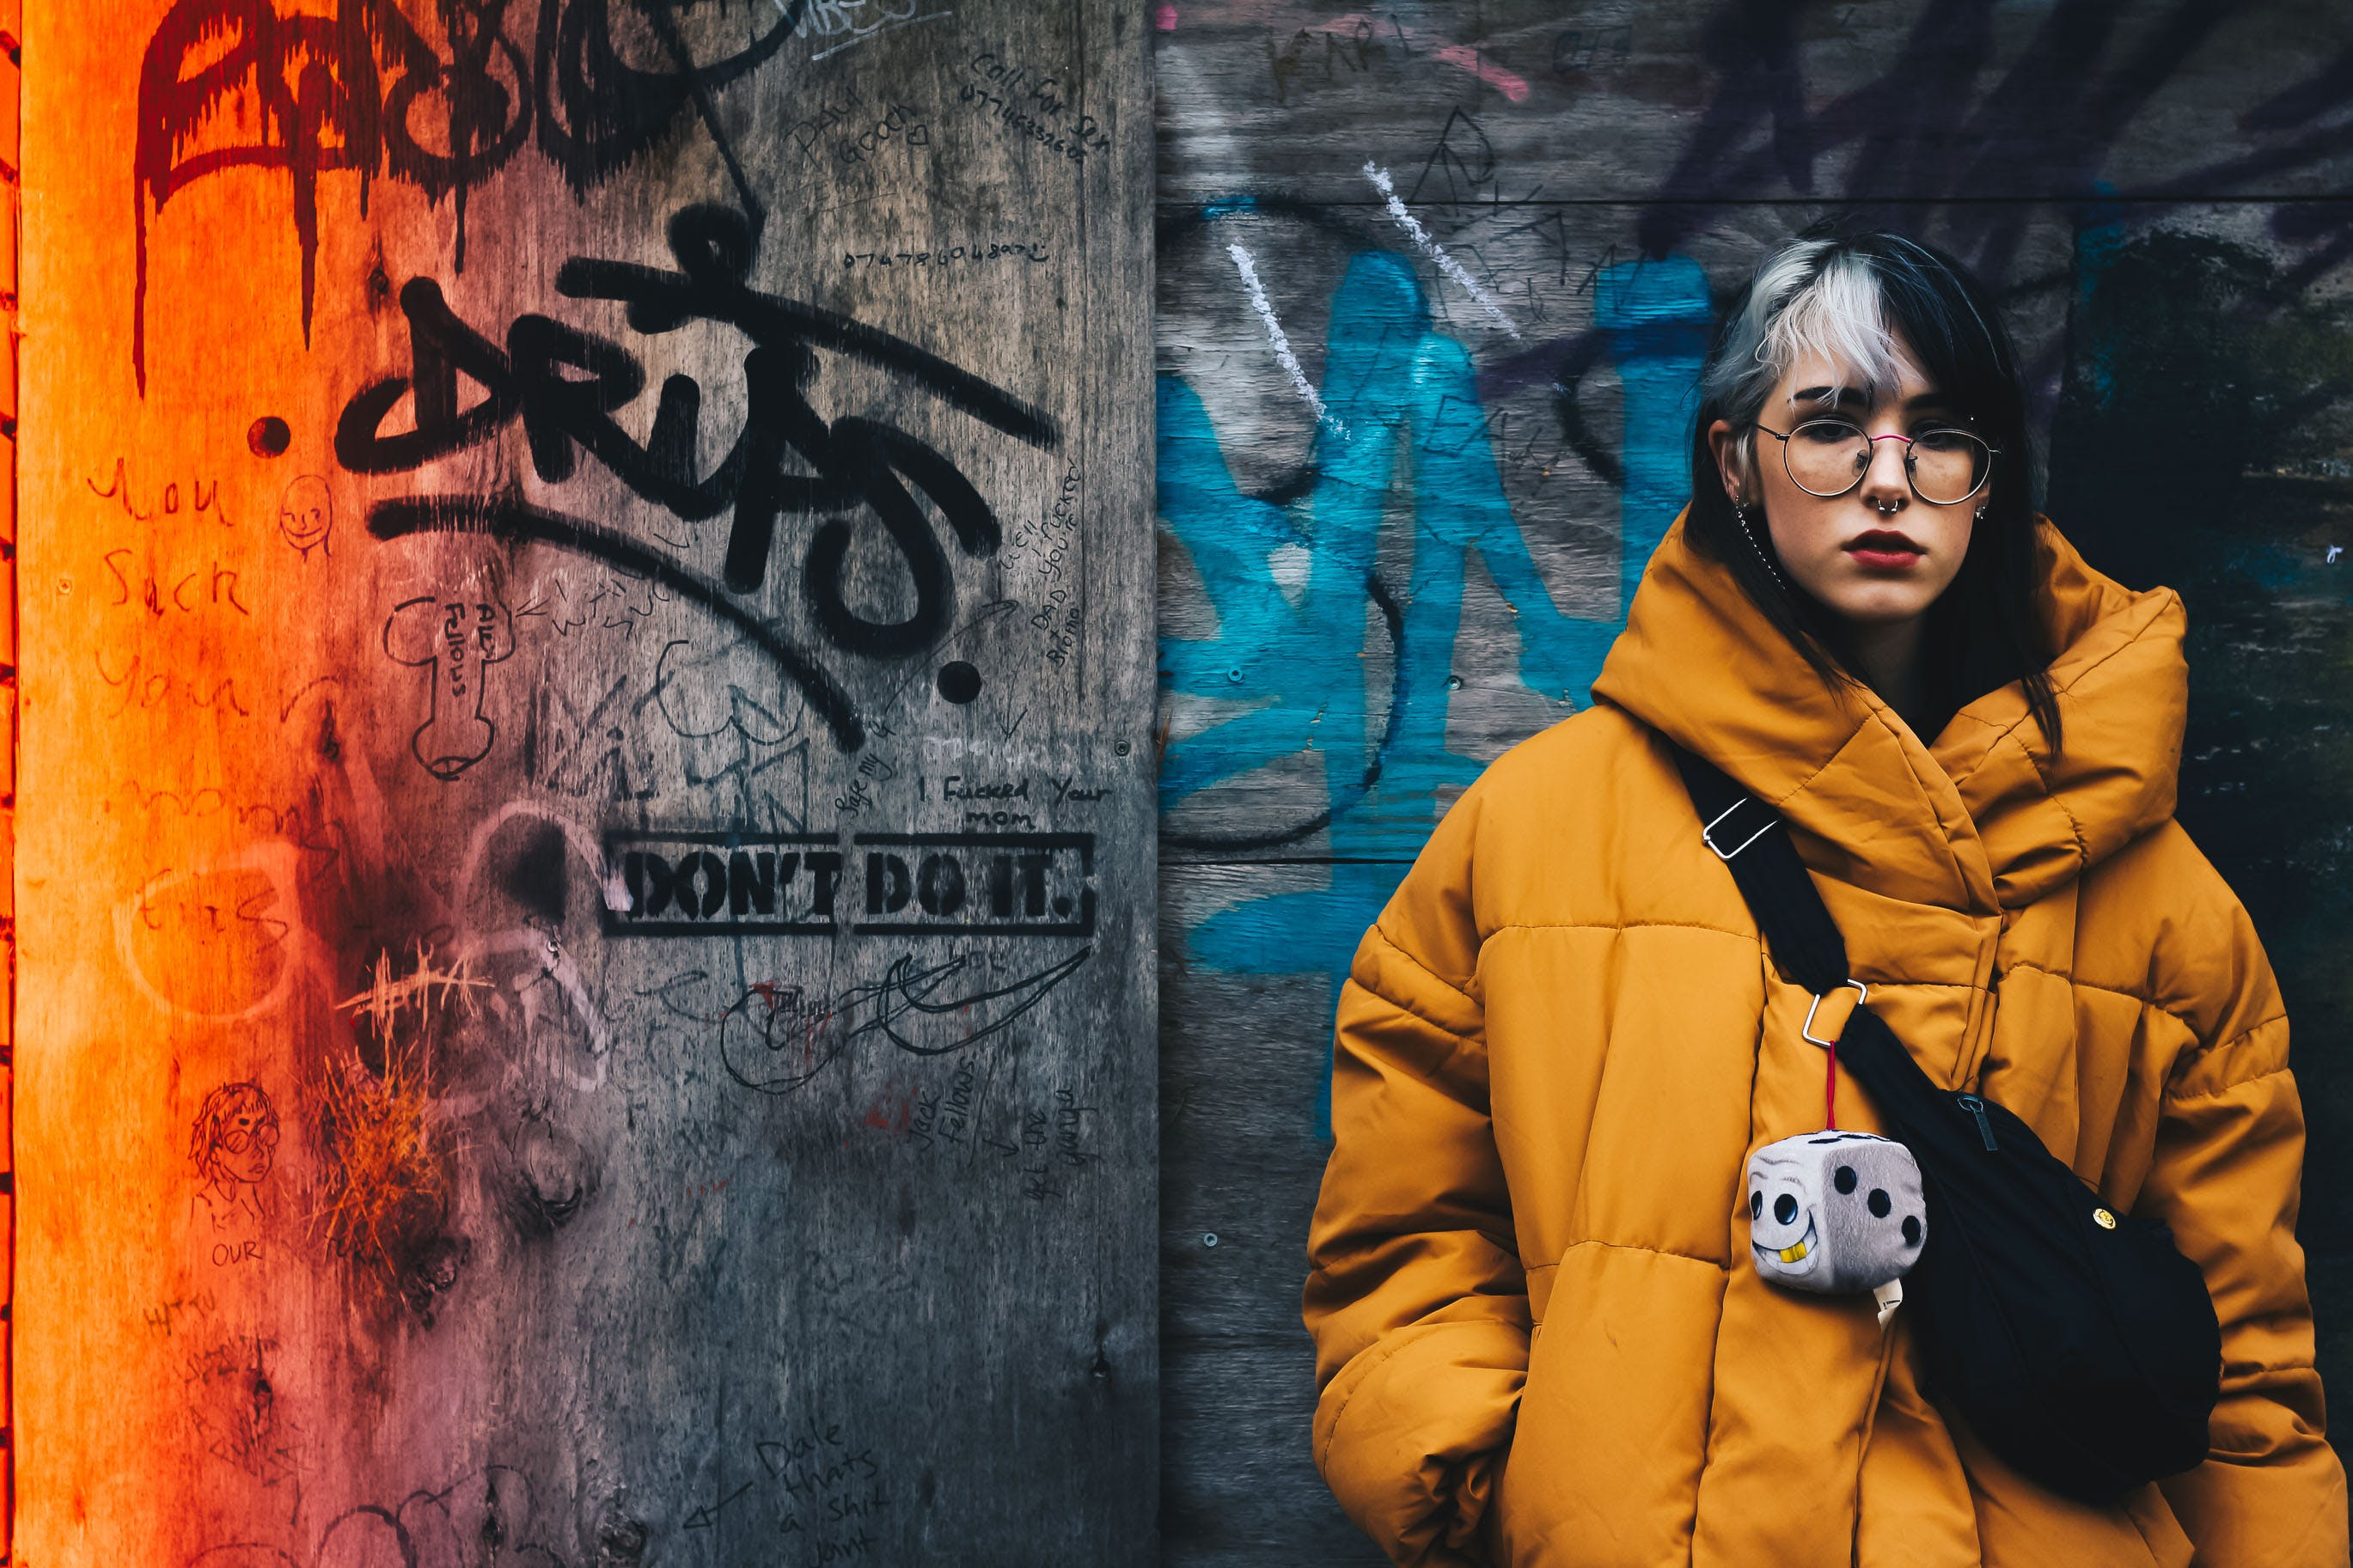 Woman in Yellow Coat With Black Crossbody Bag Closing Her Eyes